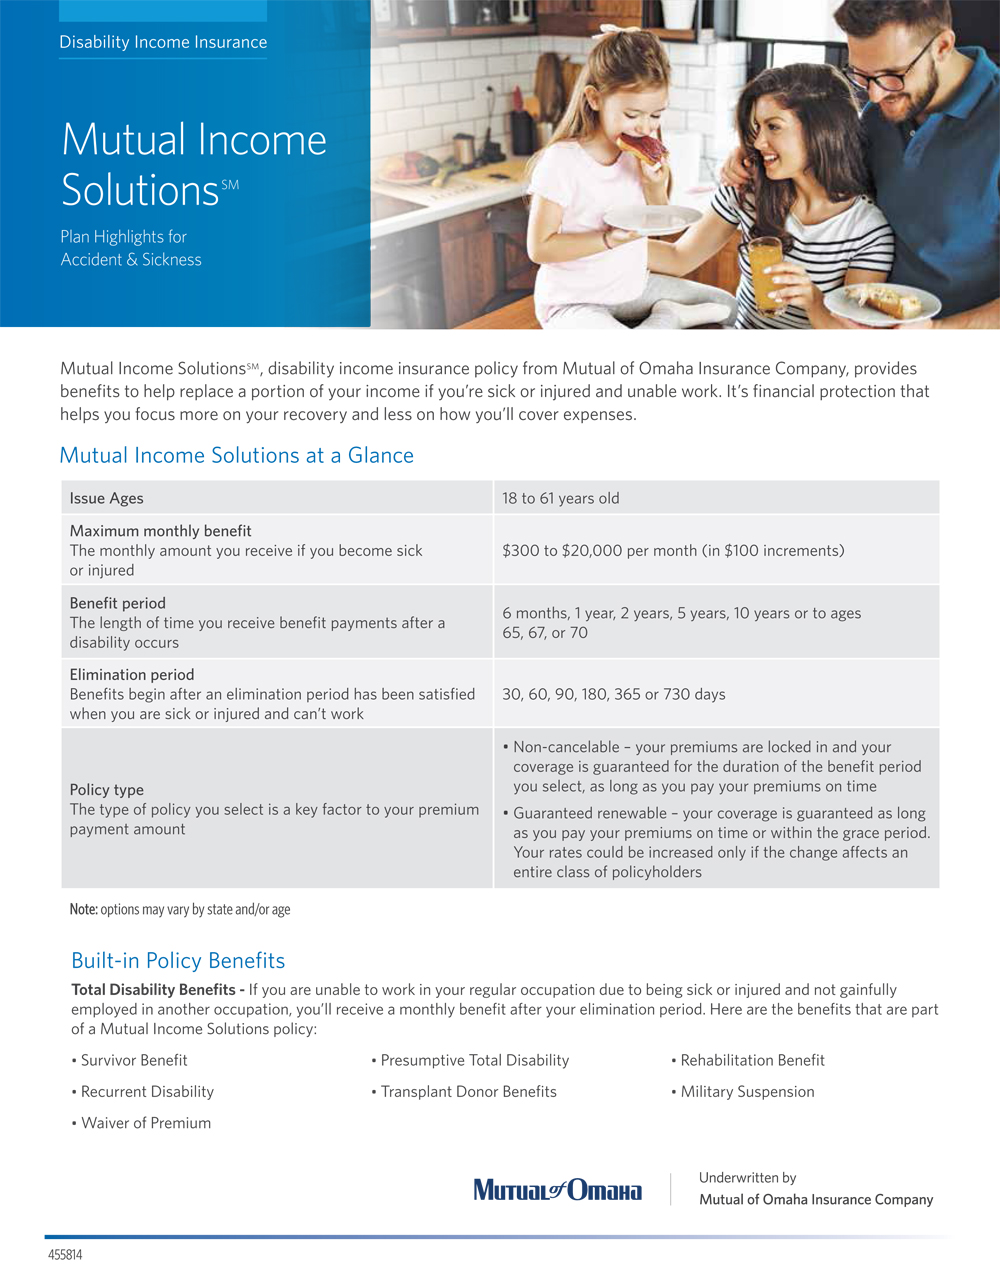 Mutual of Omaha Mutual Income Solutions